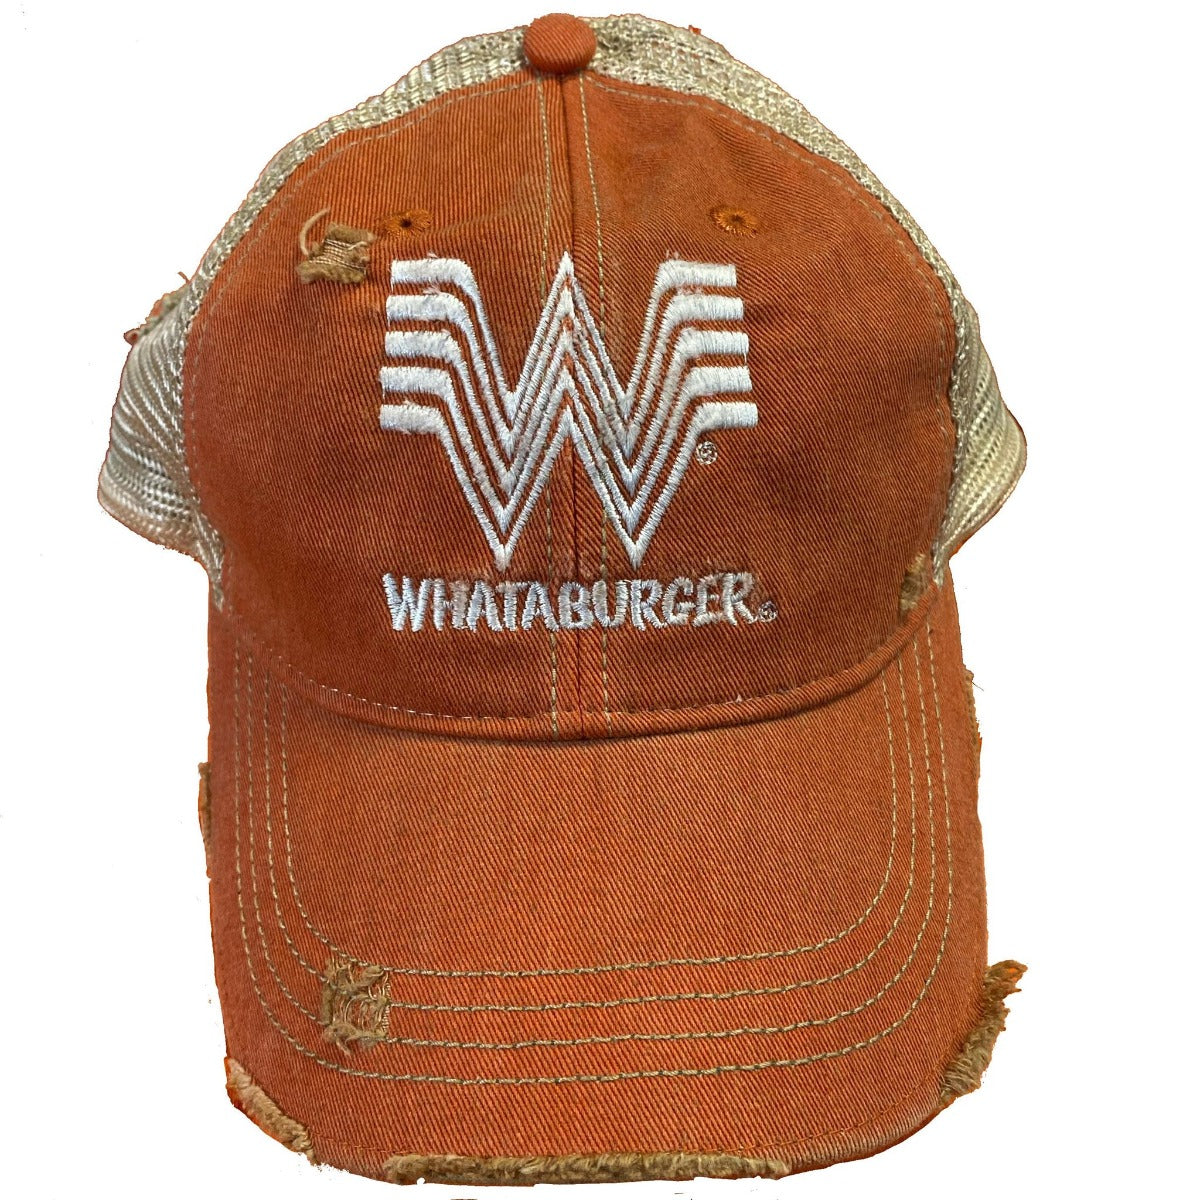 Whataburger Vintage Snap Back Trucker Cap